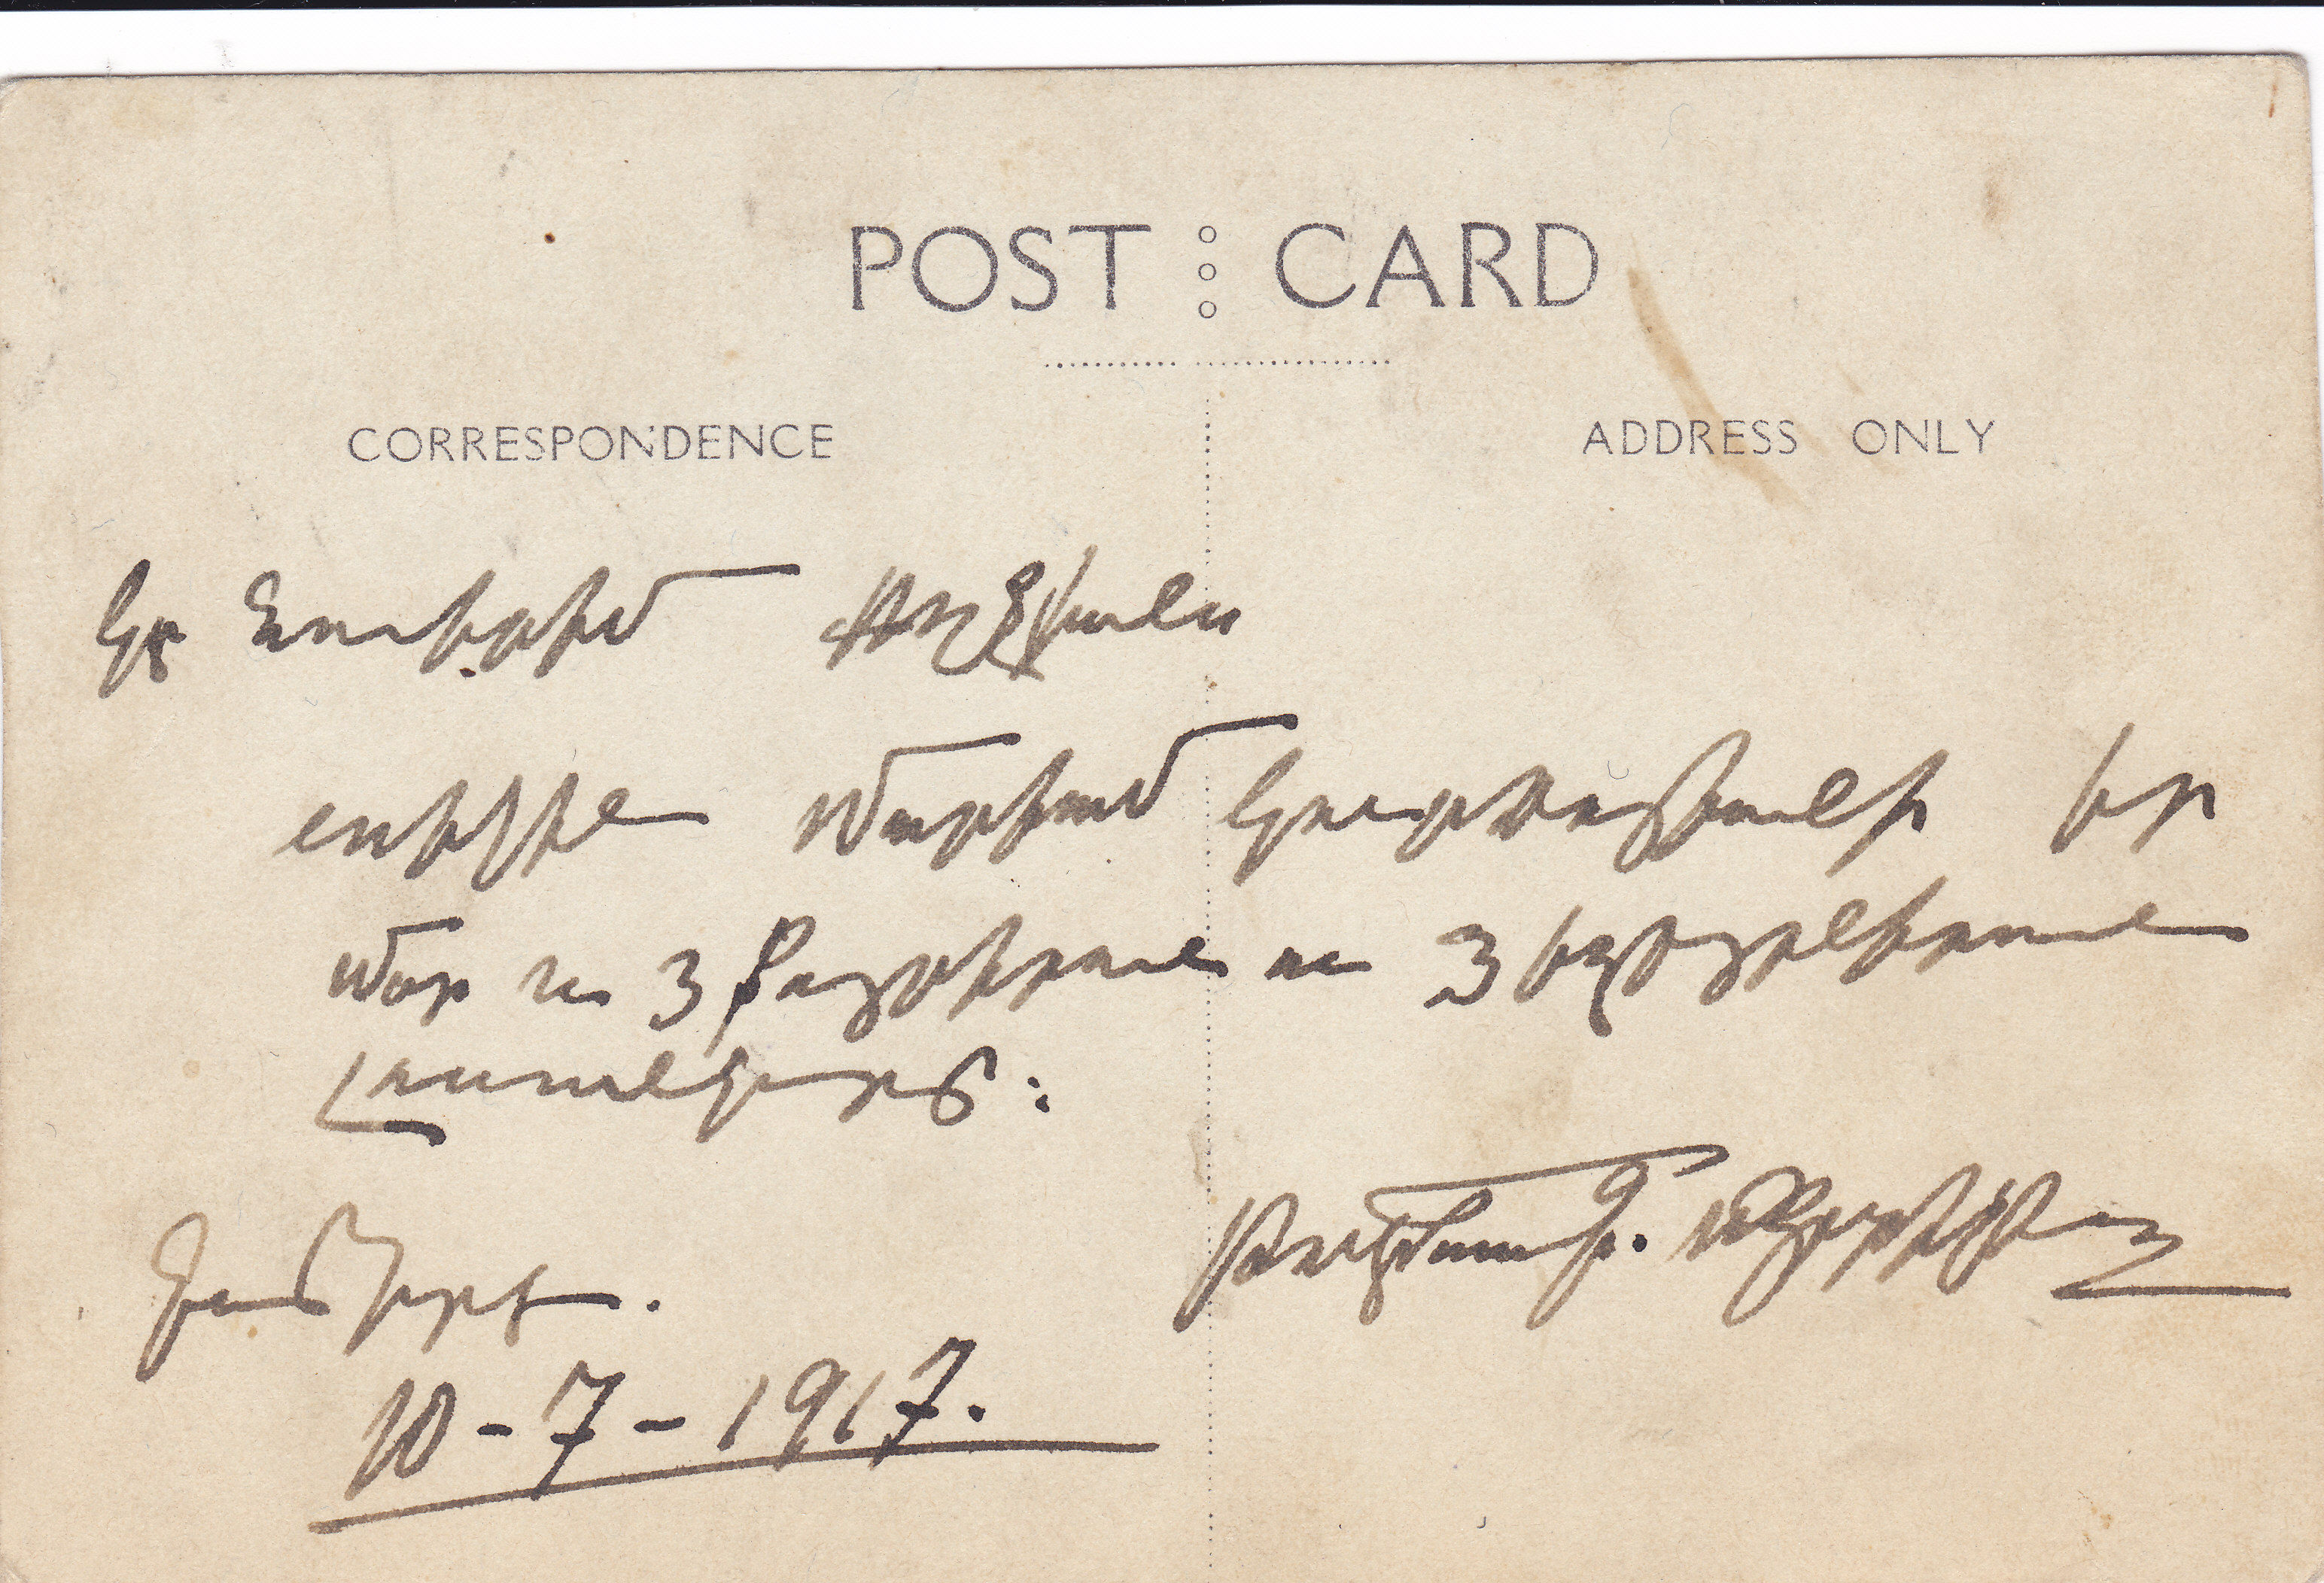 Back of the previous picture, sent by Thomas as a postcard in 1917